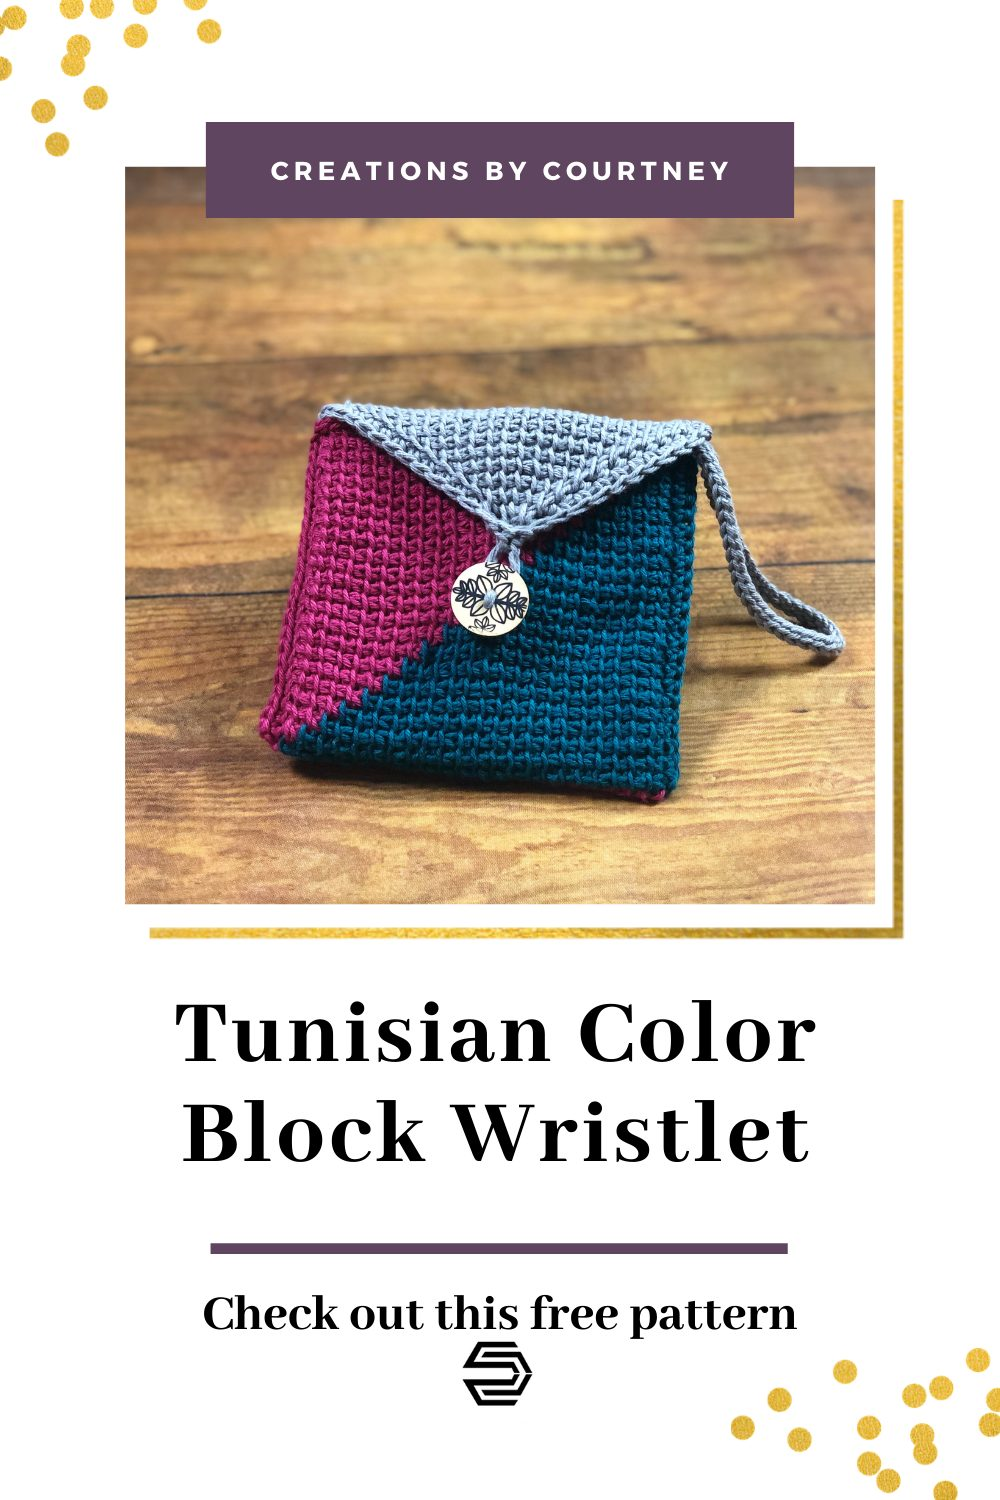 The Tunisian Color Block Wristlet is a free crochet pattern. You can learn how to make a color change in tunisian simple stitch and make increases at the beginning and end of a row. Besides this being fun to make, it's also a stash busting project only requiring 44 yards of the two main colors and 16 yards of the third color.